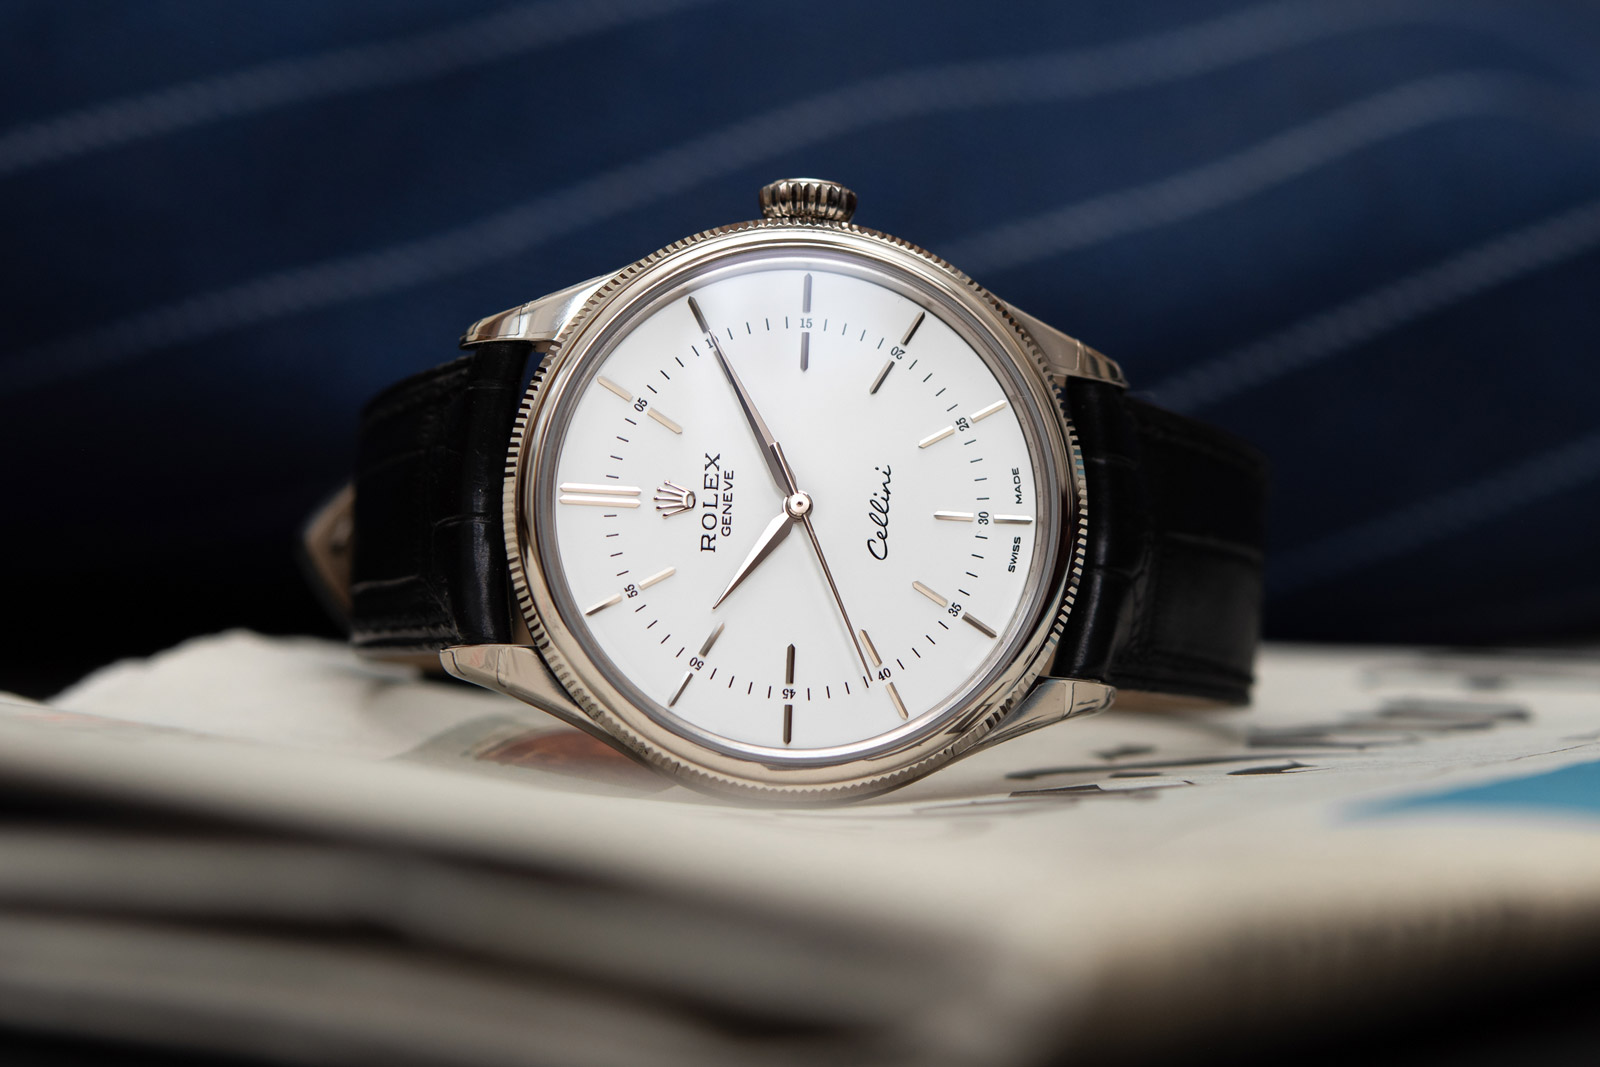 Rolex Cellini Time <br> Reference 50509